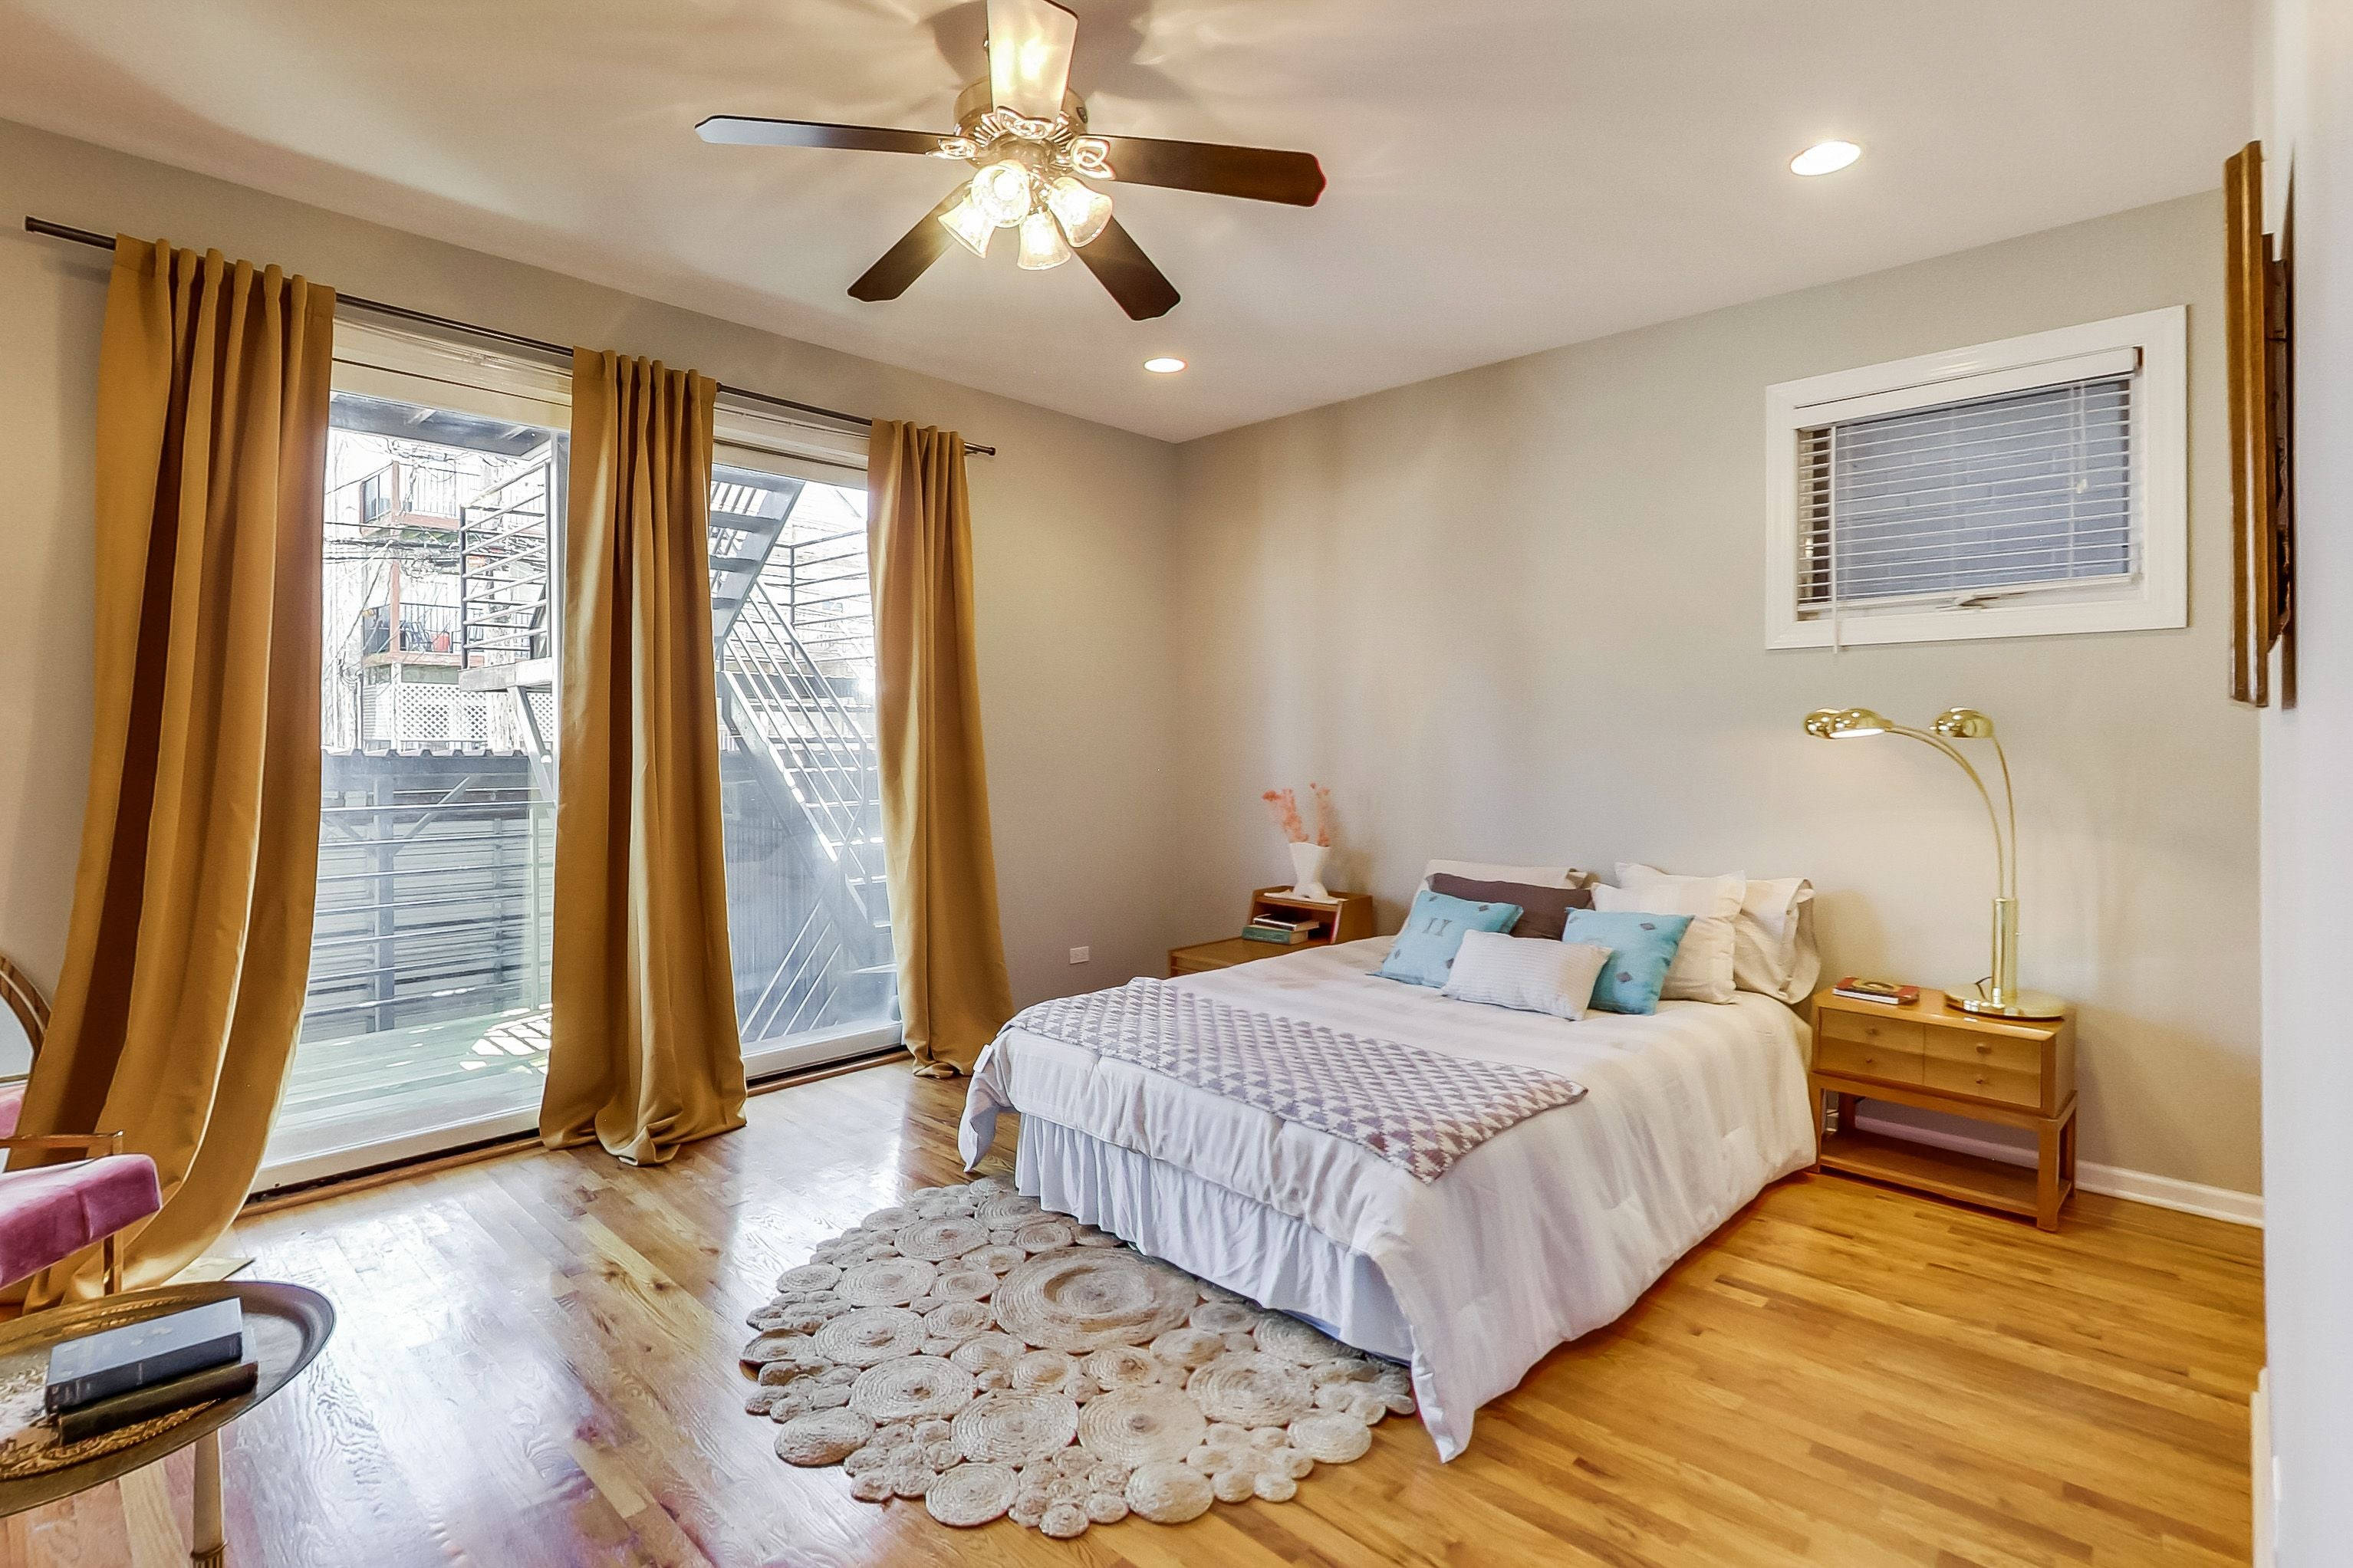 Located in West Town Chicago, Eskell staged this condominium for sale with family-friendly style.